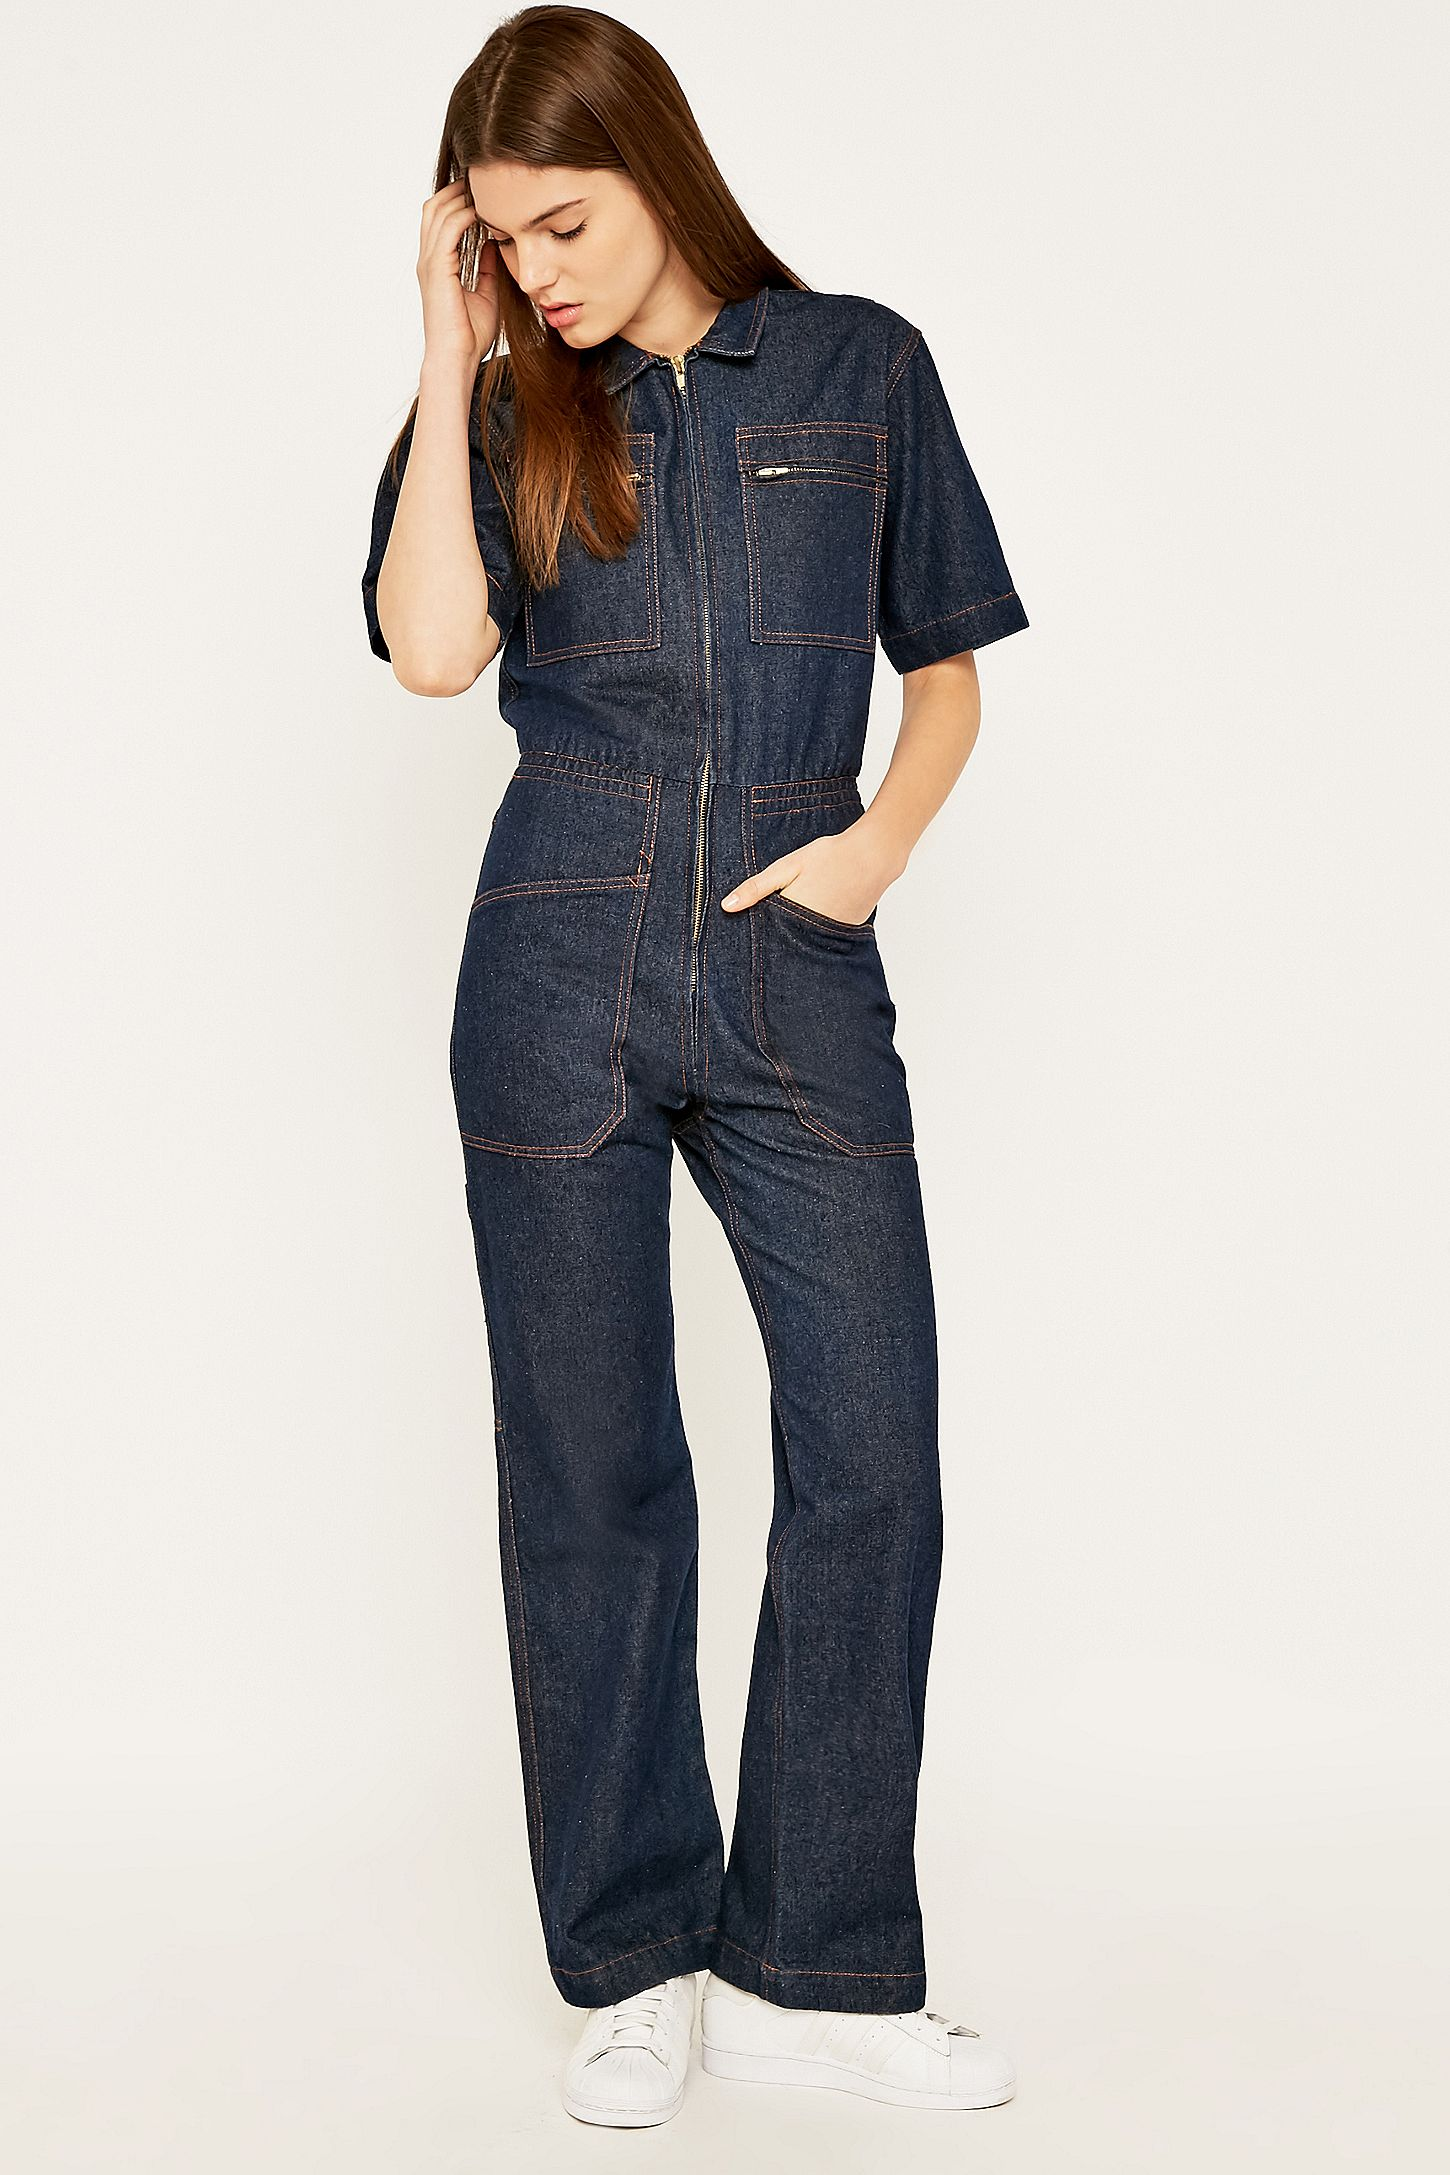 b3dac5789fc LF Markey Danny Blue Denim Boilersuit